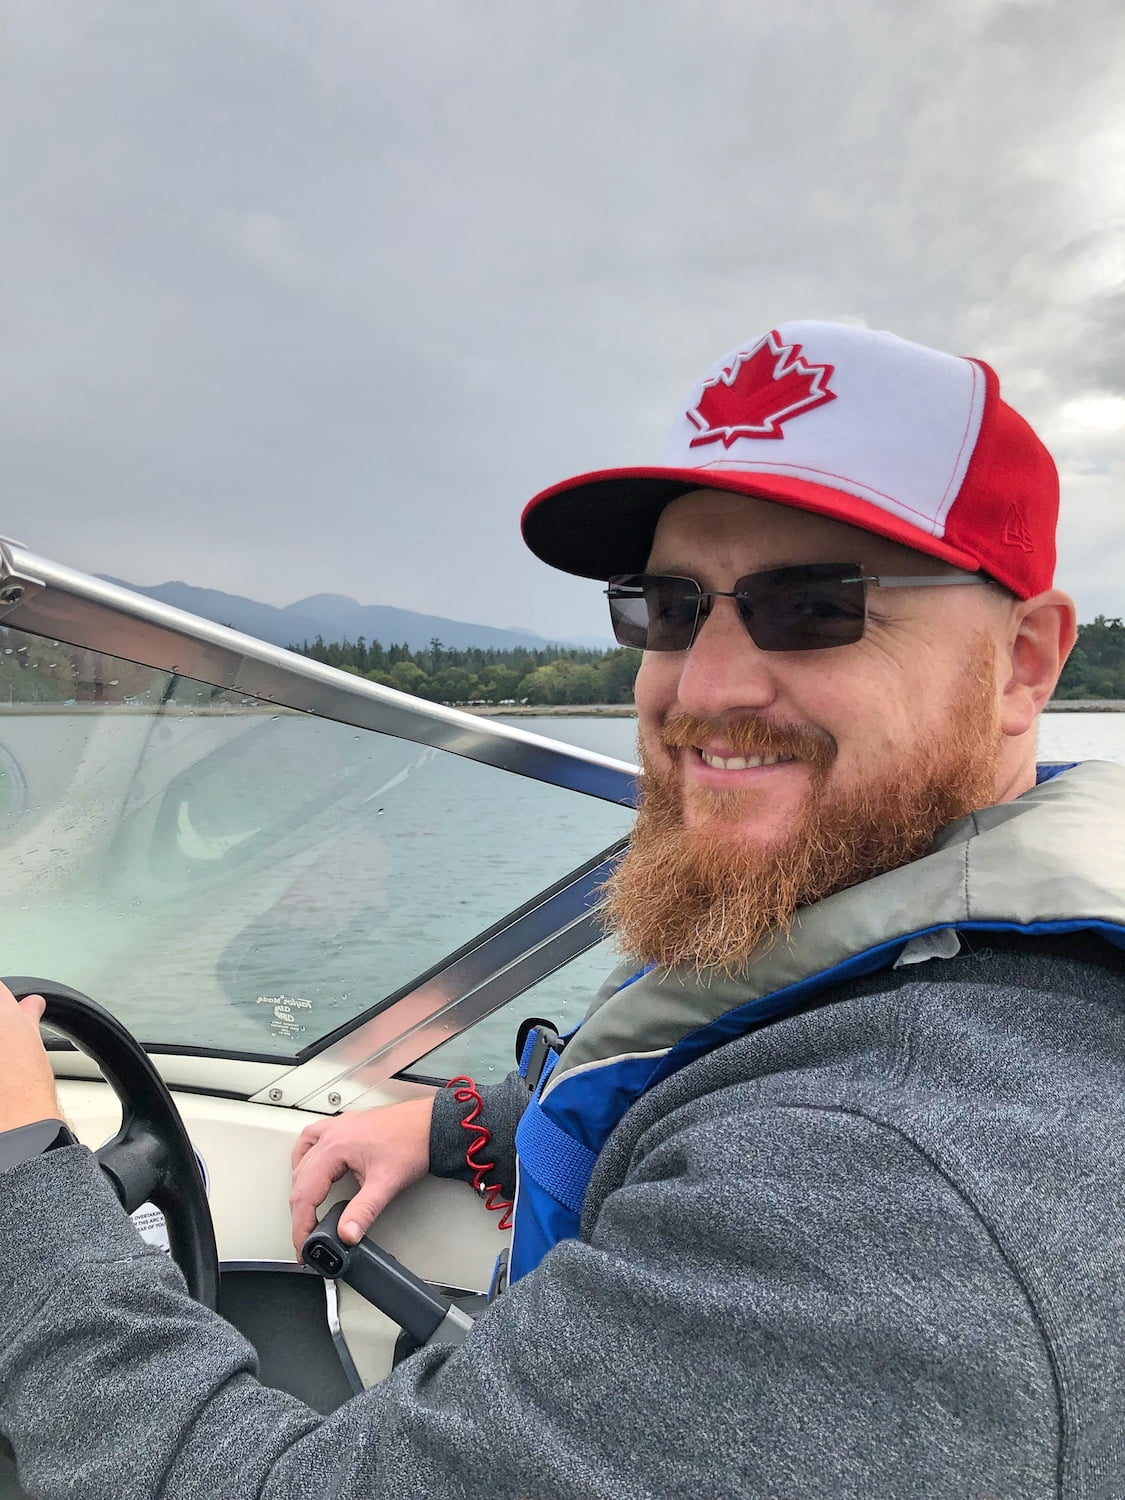 Captain Dad Driving Boat with Canadians Hat